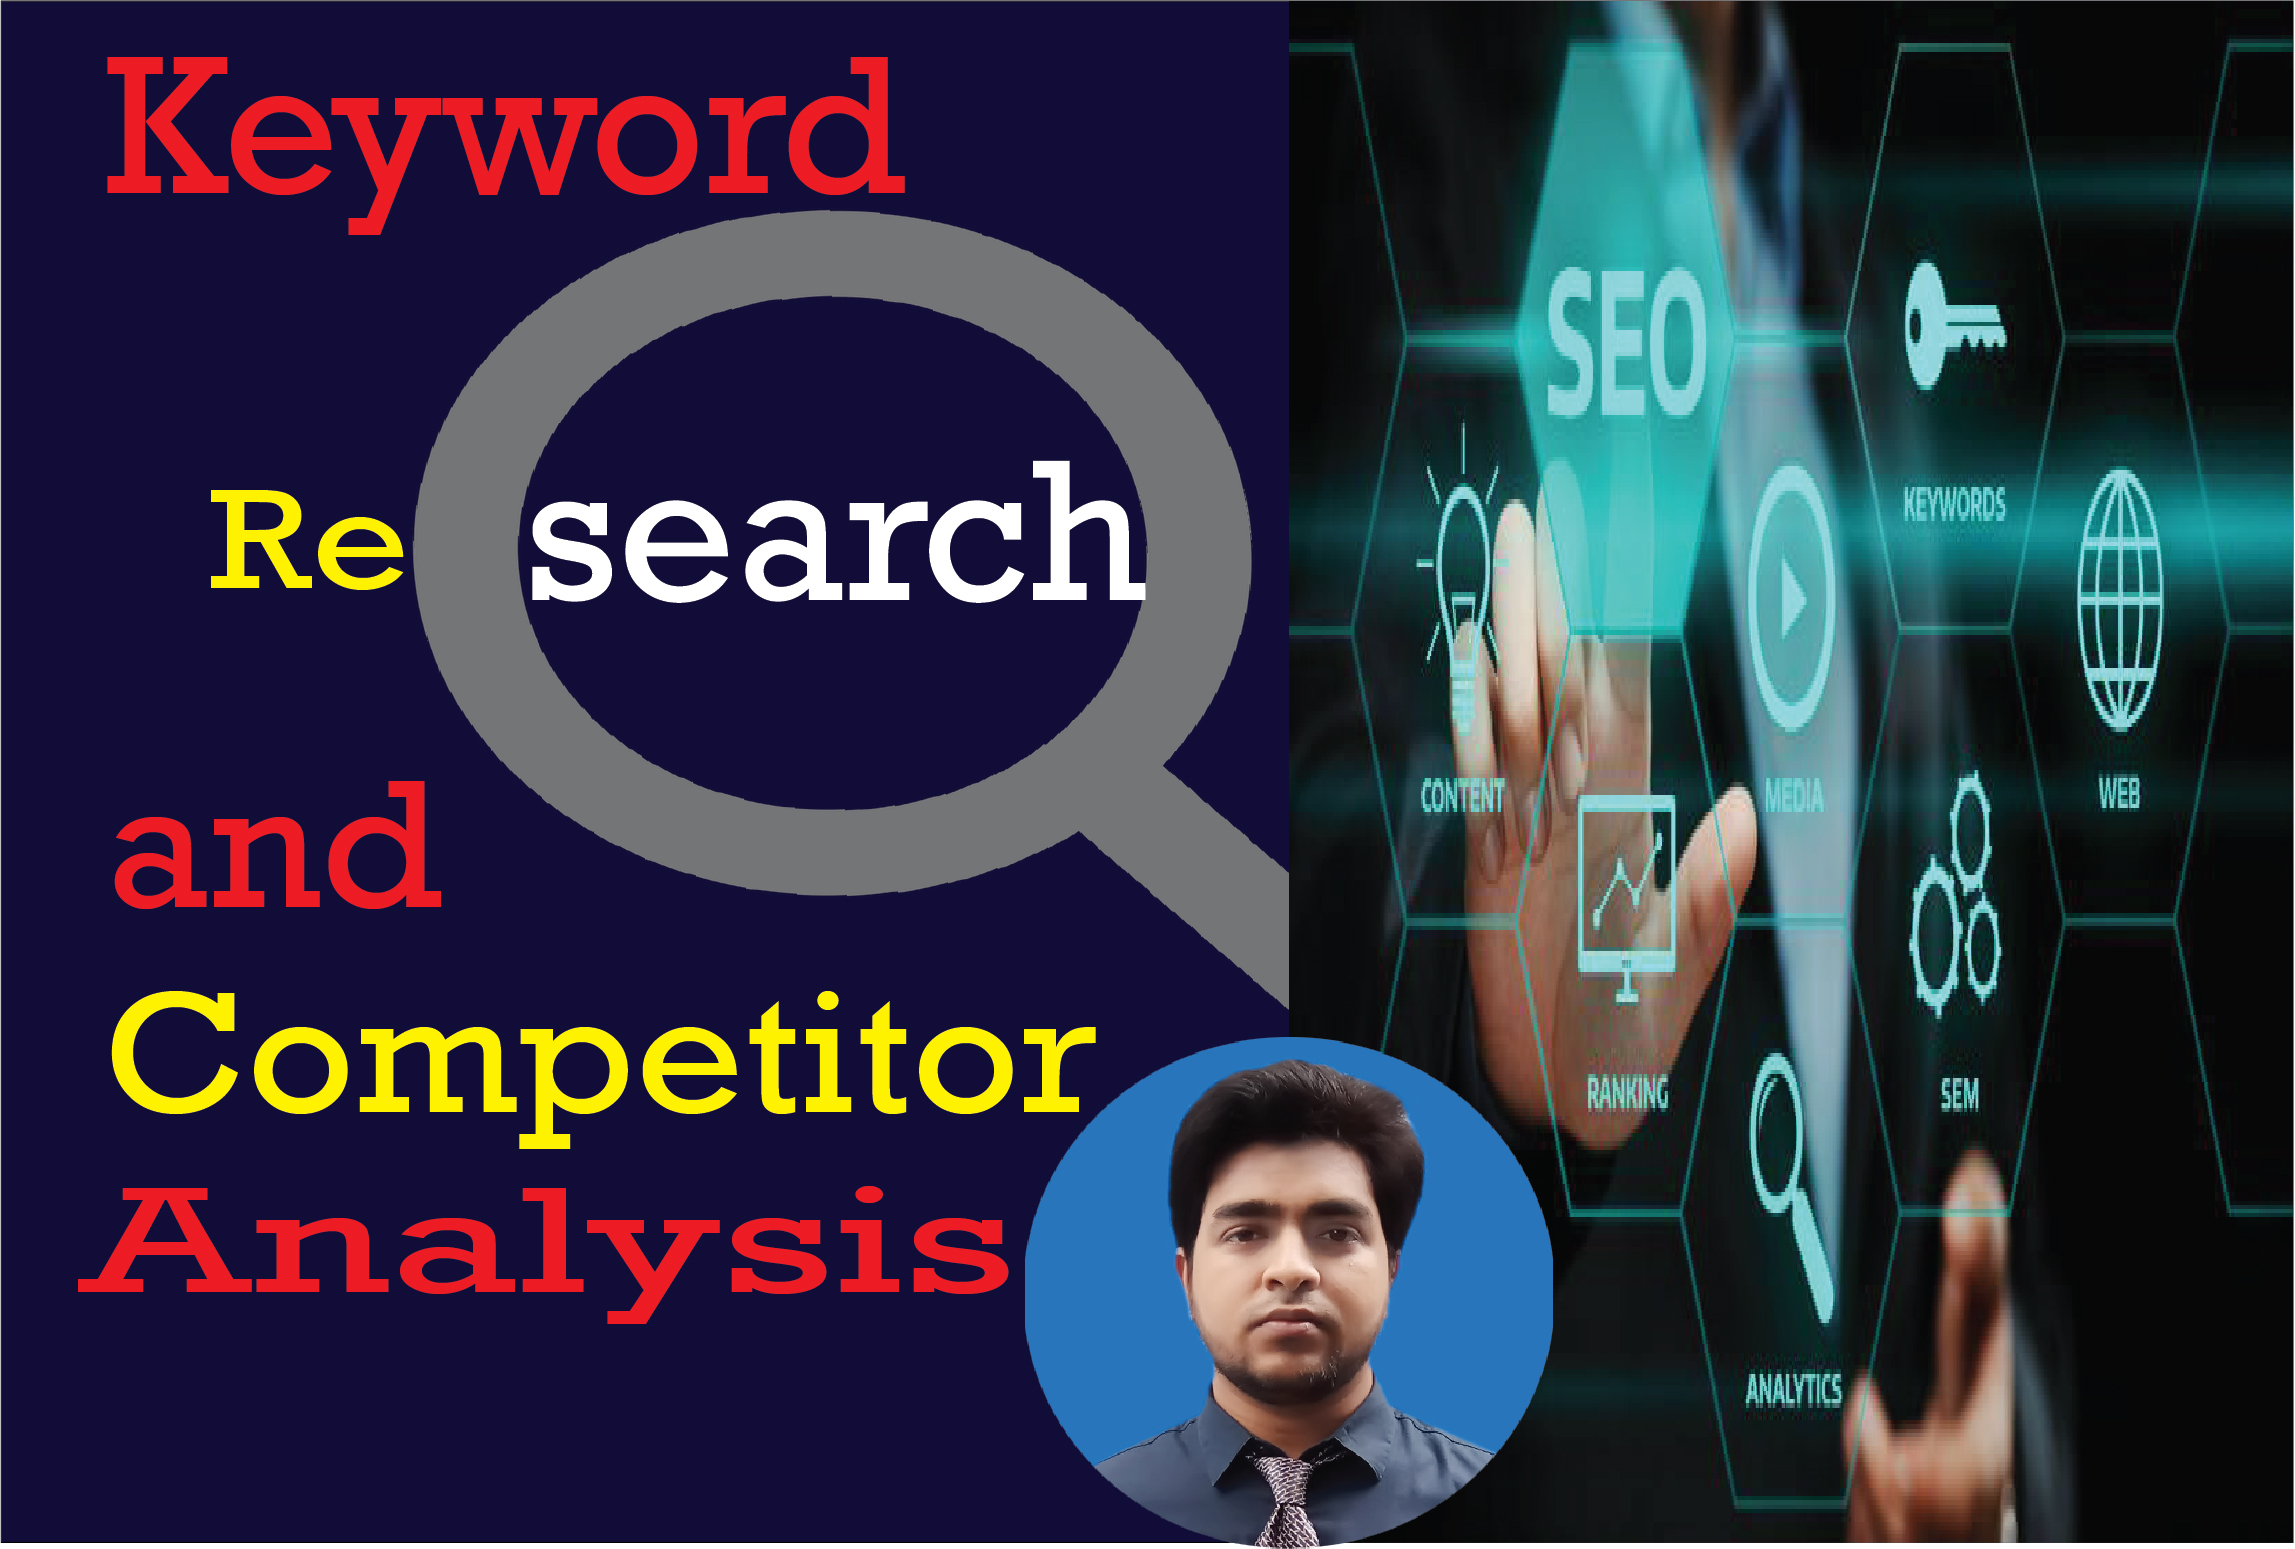 I will do keyword research and competitor analysis for google rank